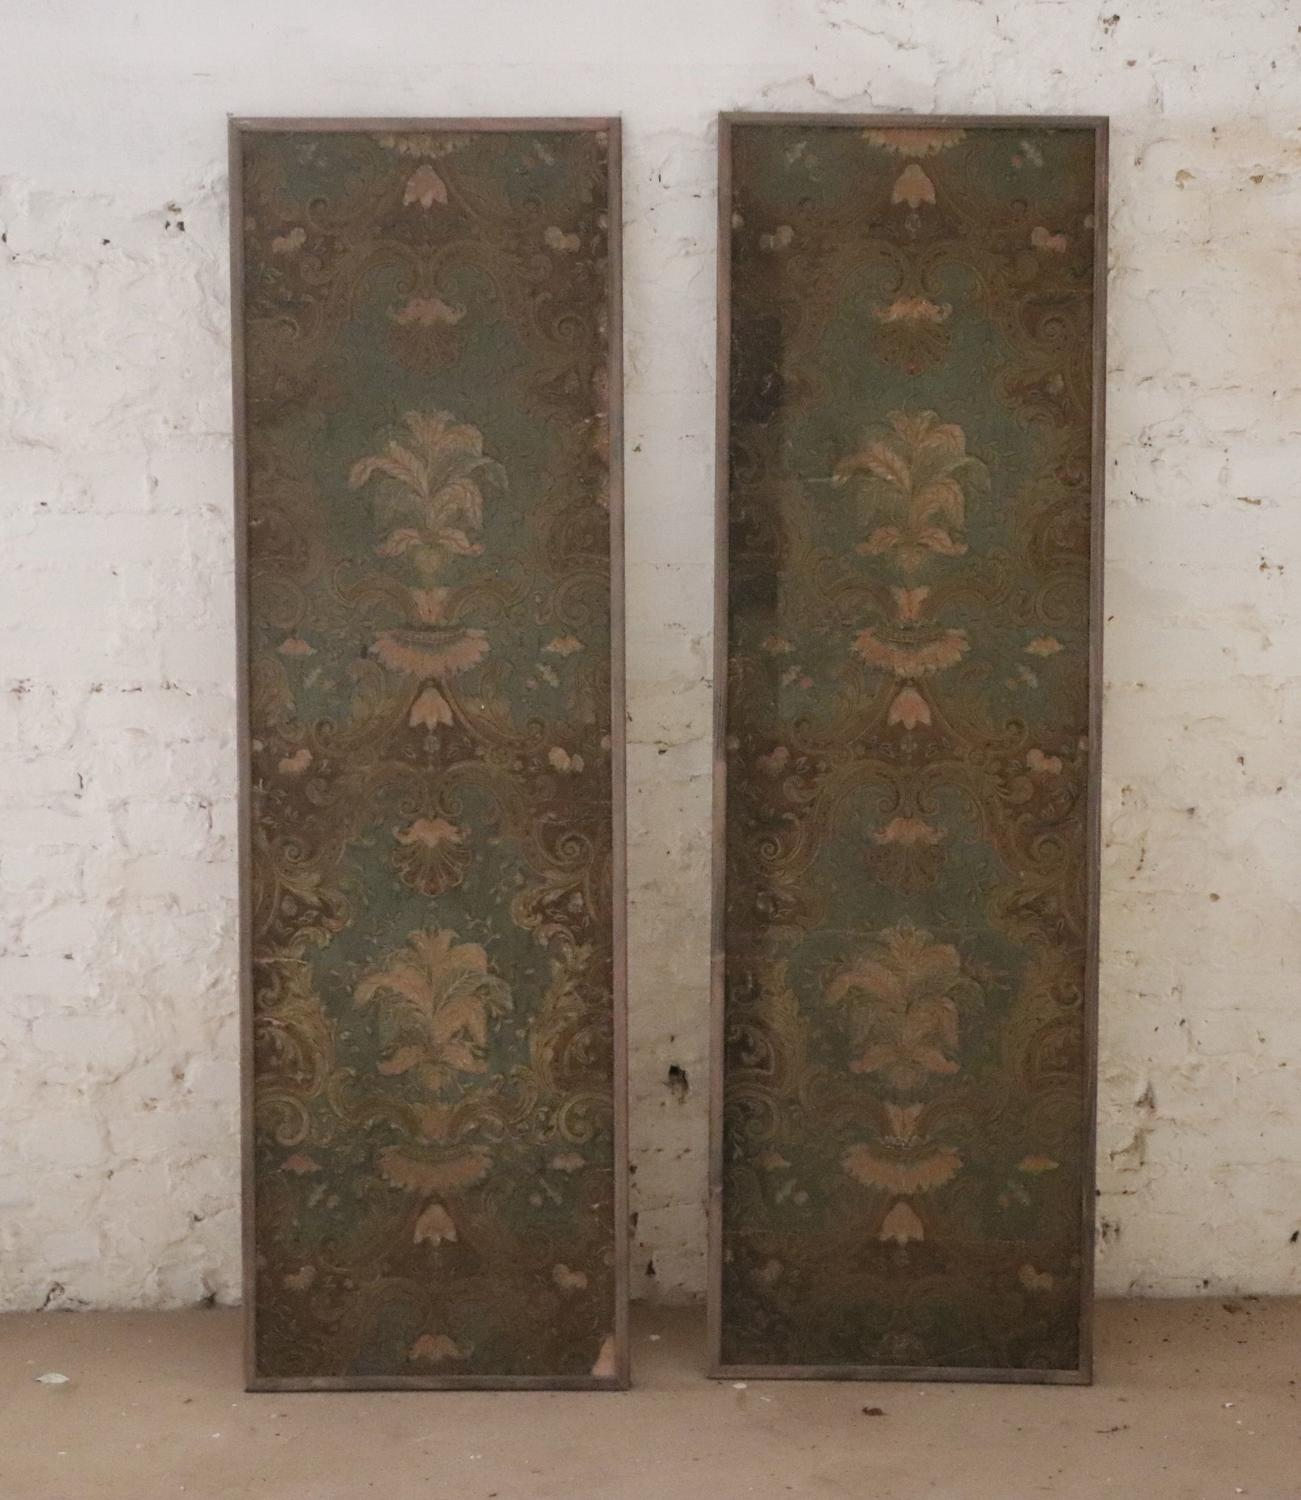 Pair of panels with early 19th century wallpaper